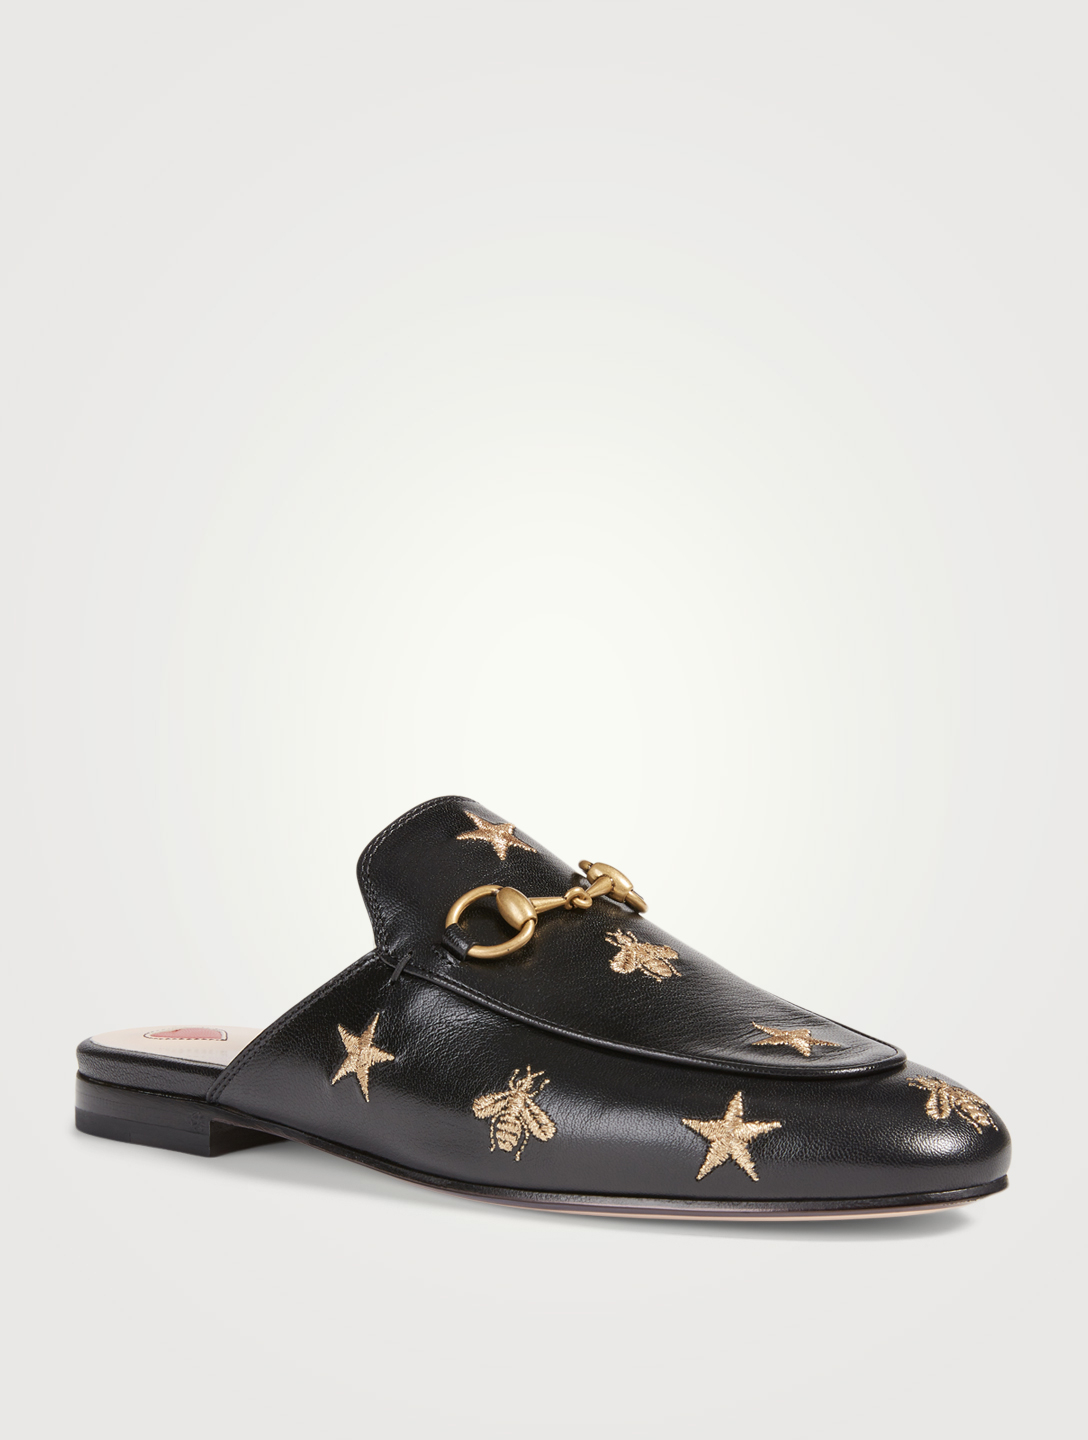 GUCCI Princetown Leather Slippers With Embroidered Stars Women's Black